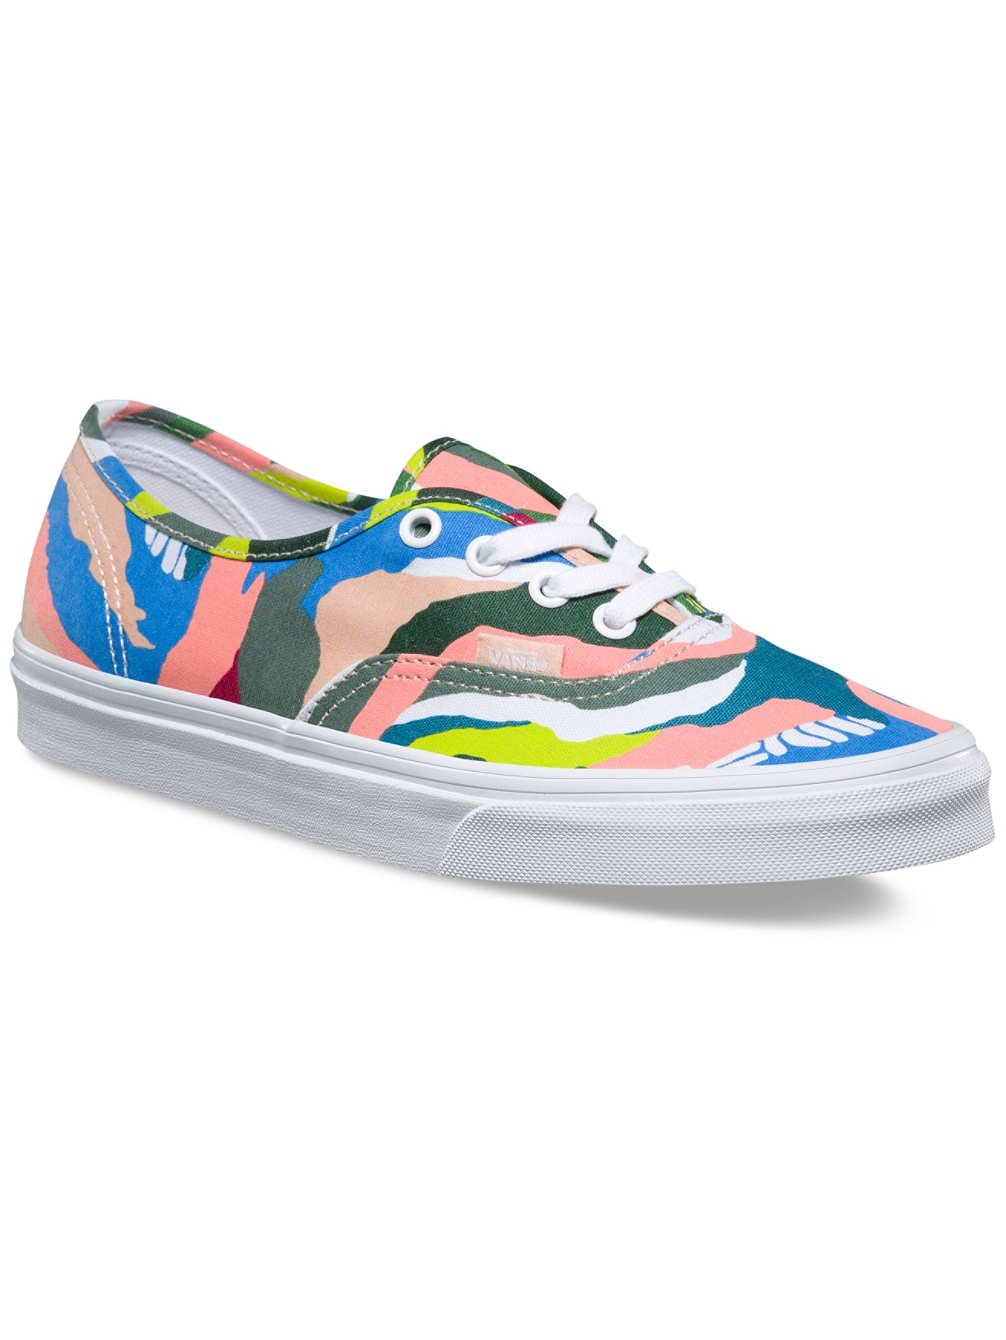 1c38a4763c Galleon - Vans Authentic Mens Fashion-Sneakers VN-A38EMMOJ 6.5 - Abstract  Horizon